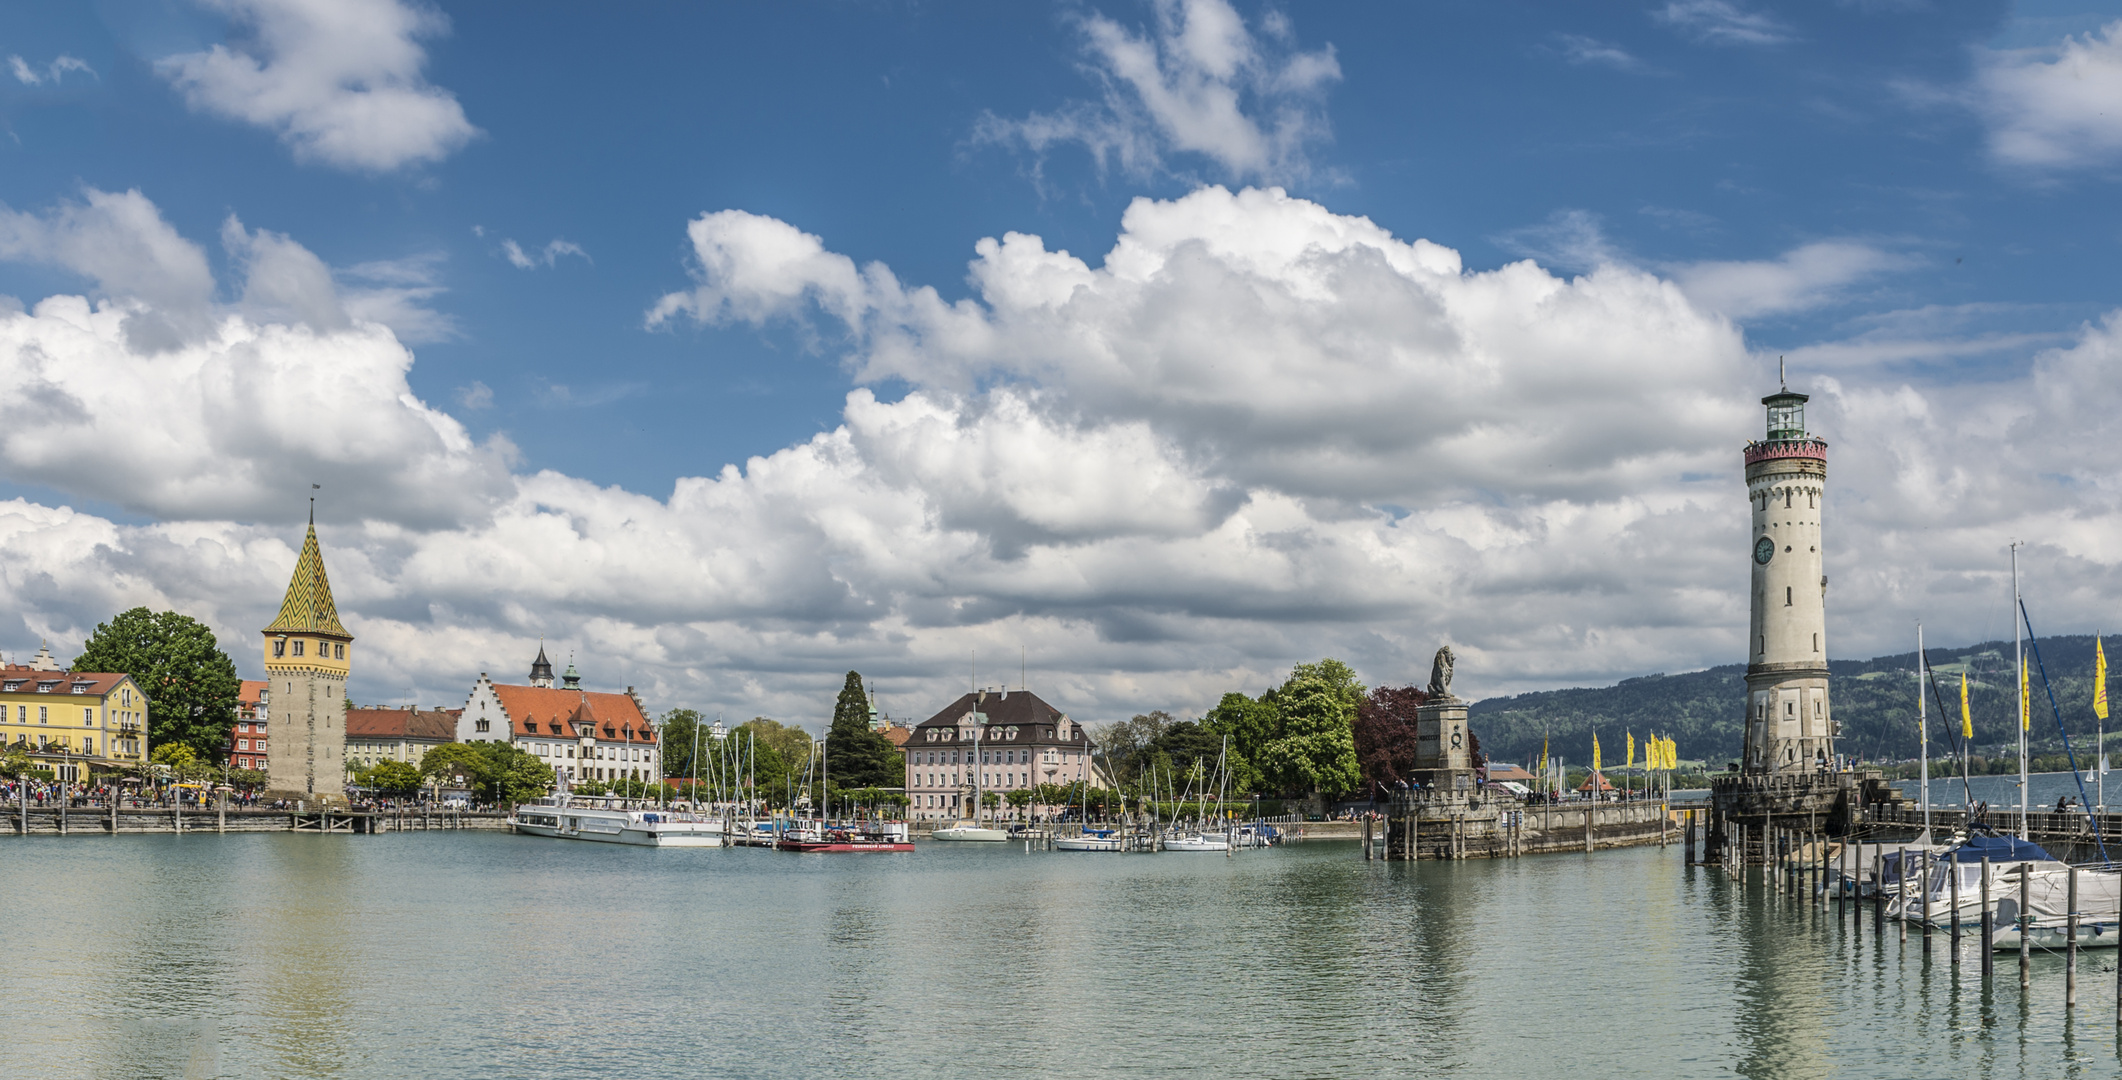 In Lindau